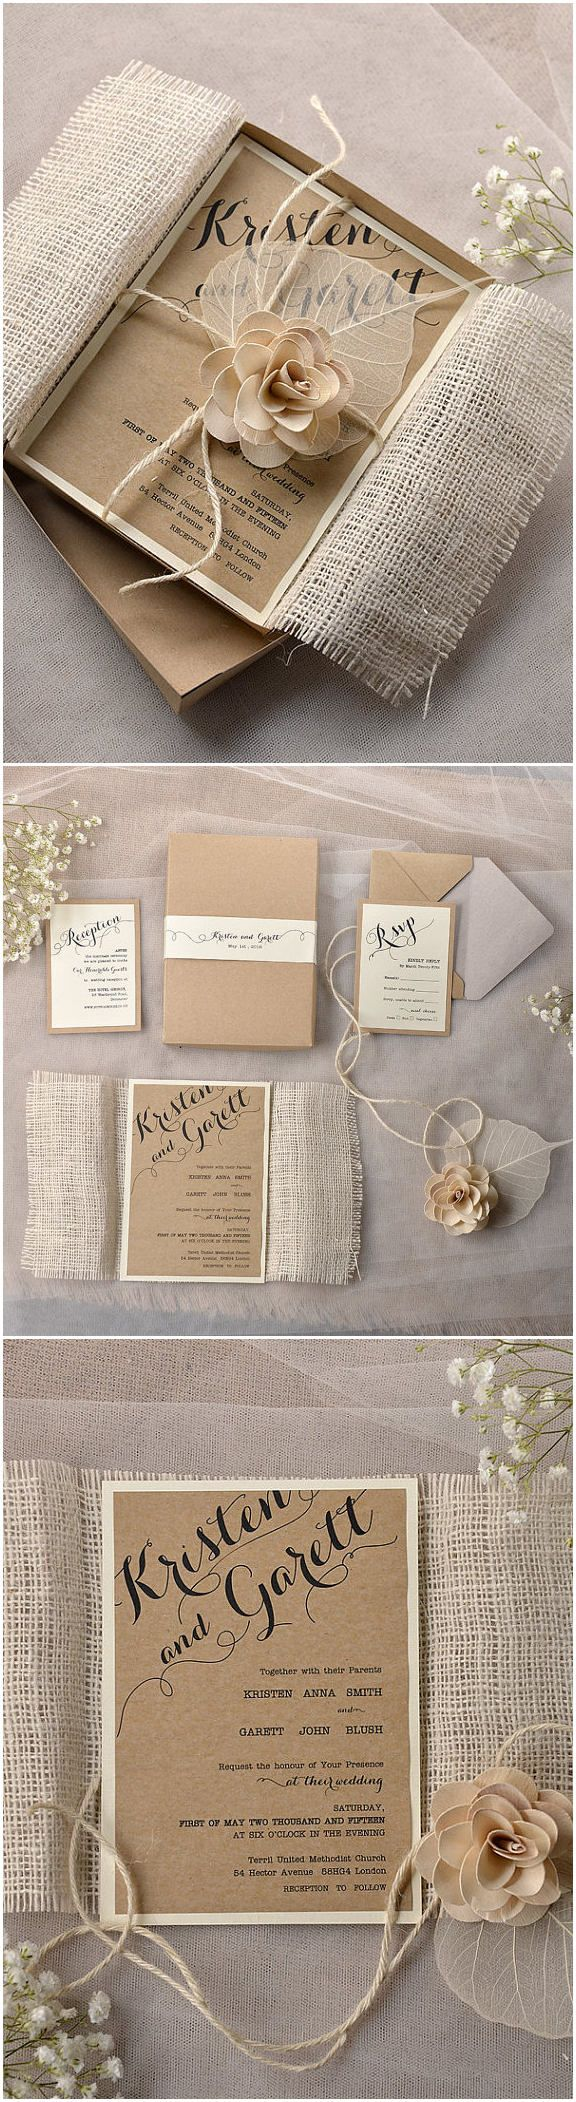 Top 10 rustic wedding invitations to wow your guests box wedding invitation ideas solutioingenieria Gallery